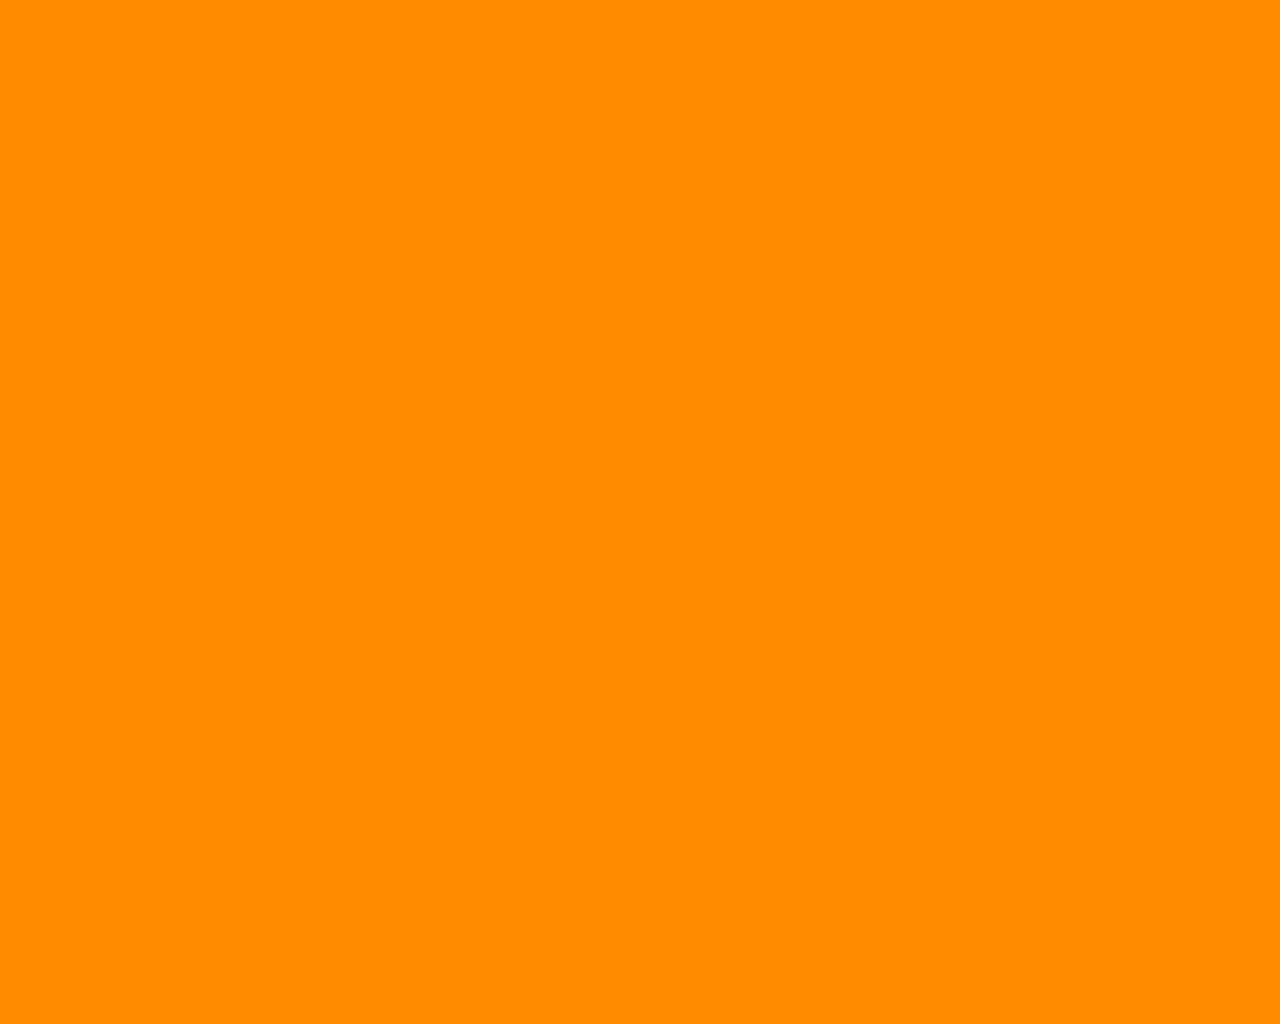 1280x1024 dark orange solid color background